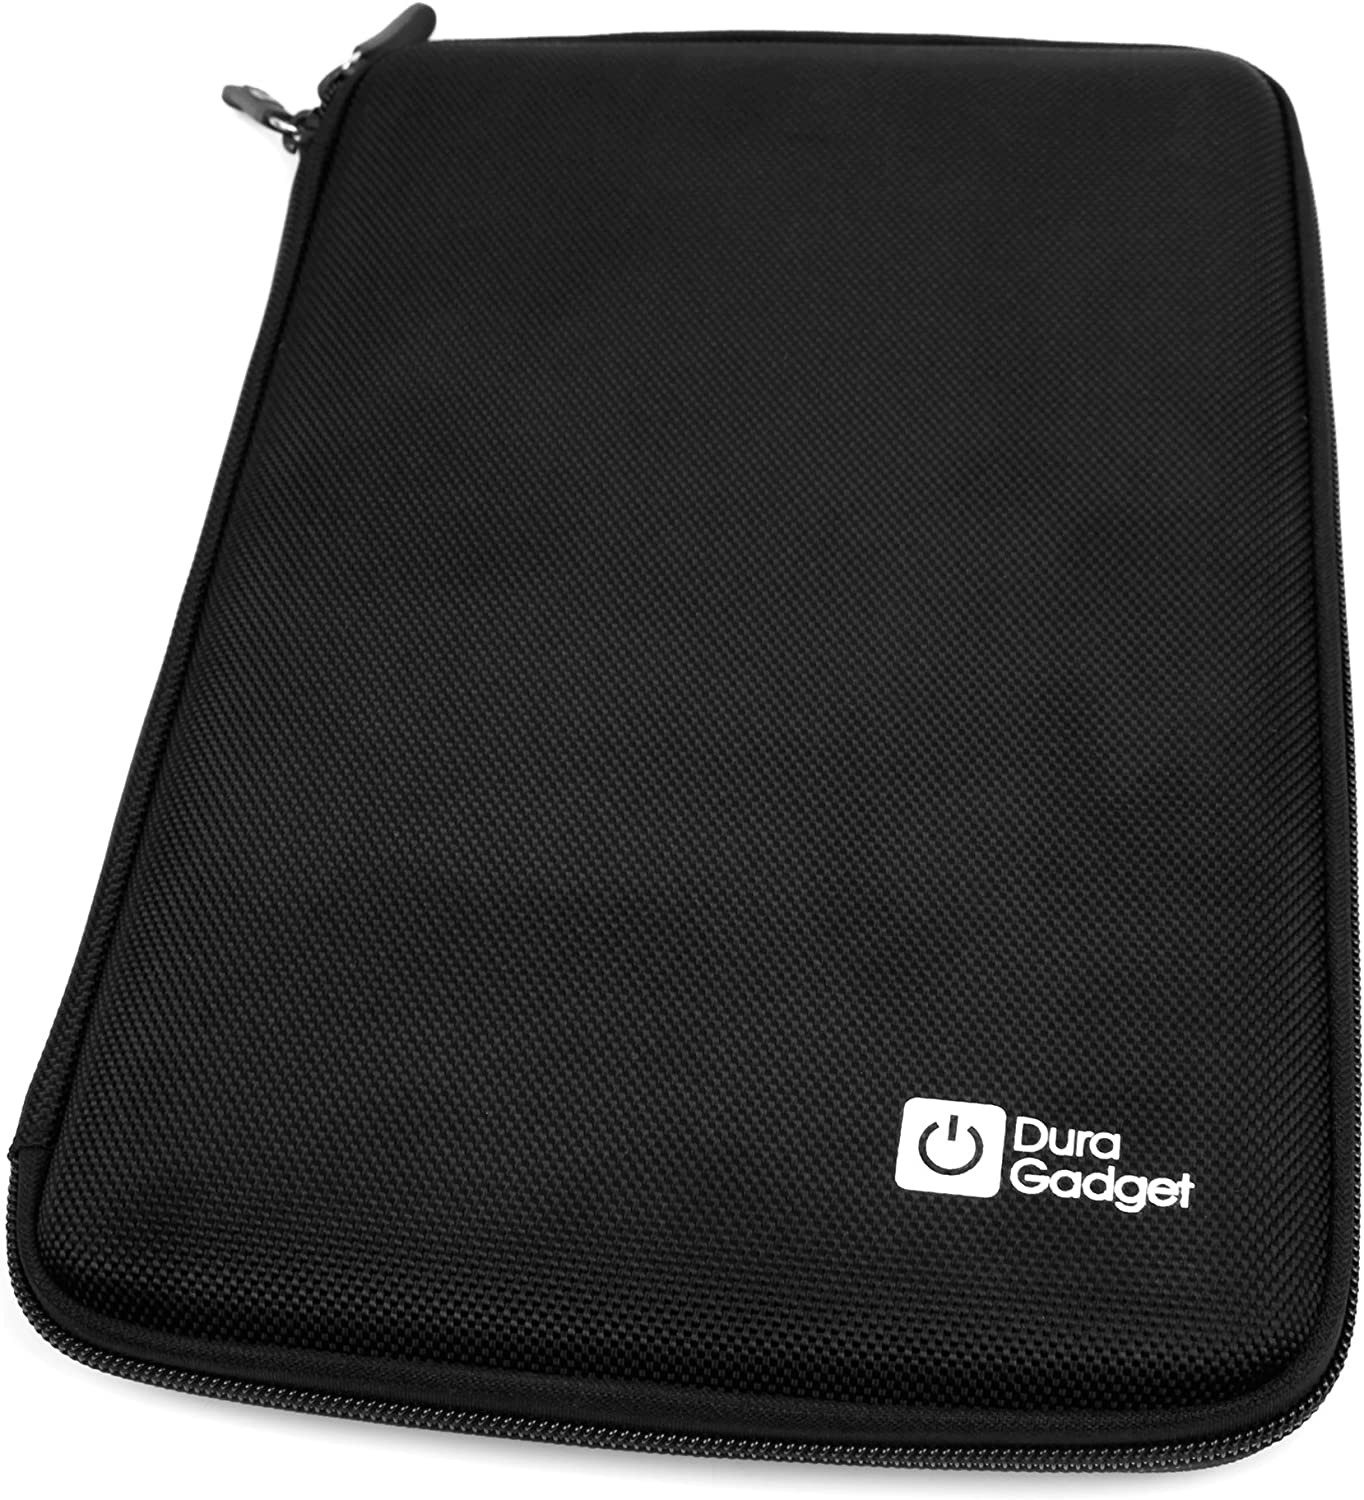 DURAGADGET Black Hard Armoured Shell Case - Compatible with Acer Iconia One 10 B3-A20 Tablet